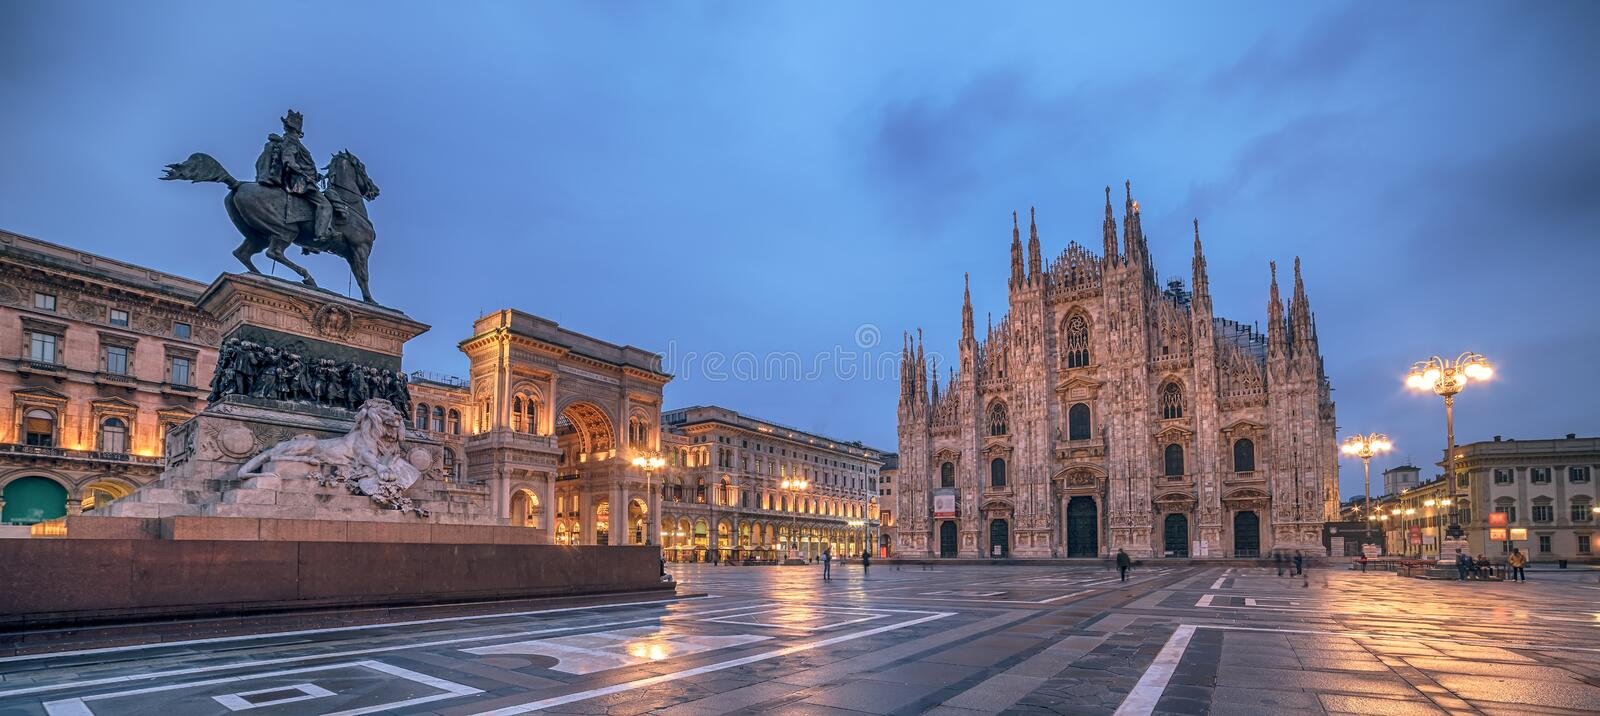 Milan, Italy: Piazza del Duomo, Cathedral Square in the sunrise royalty free stock images